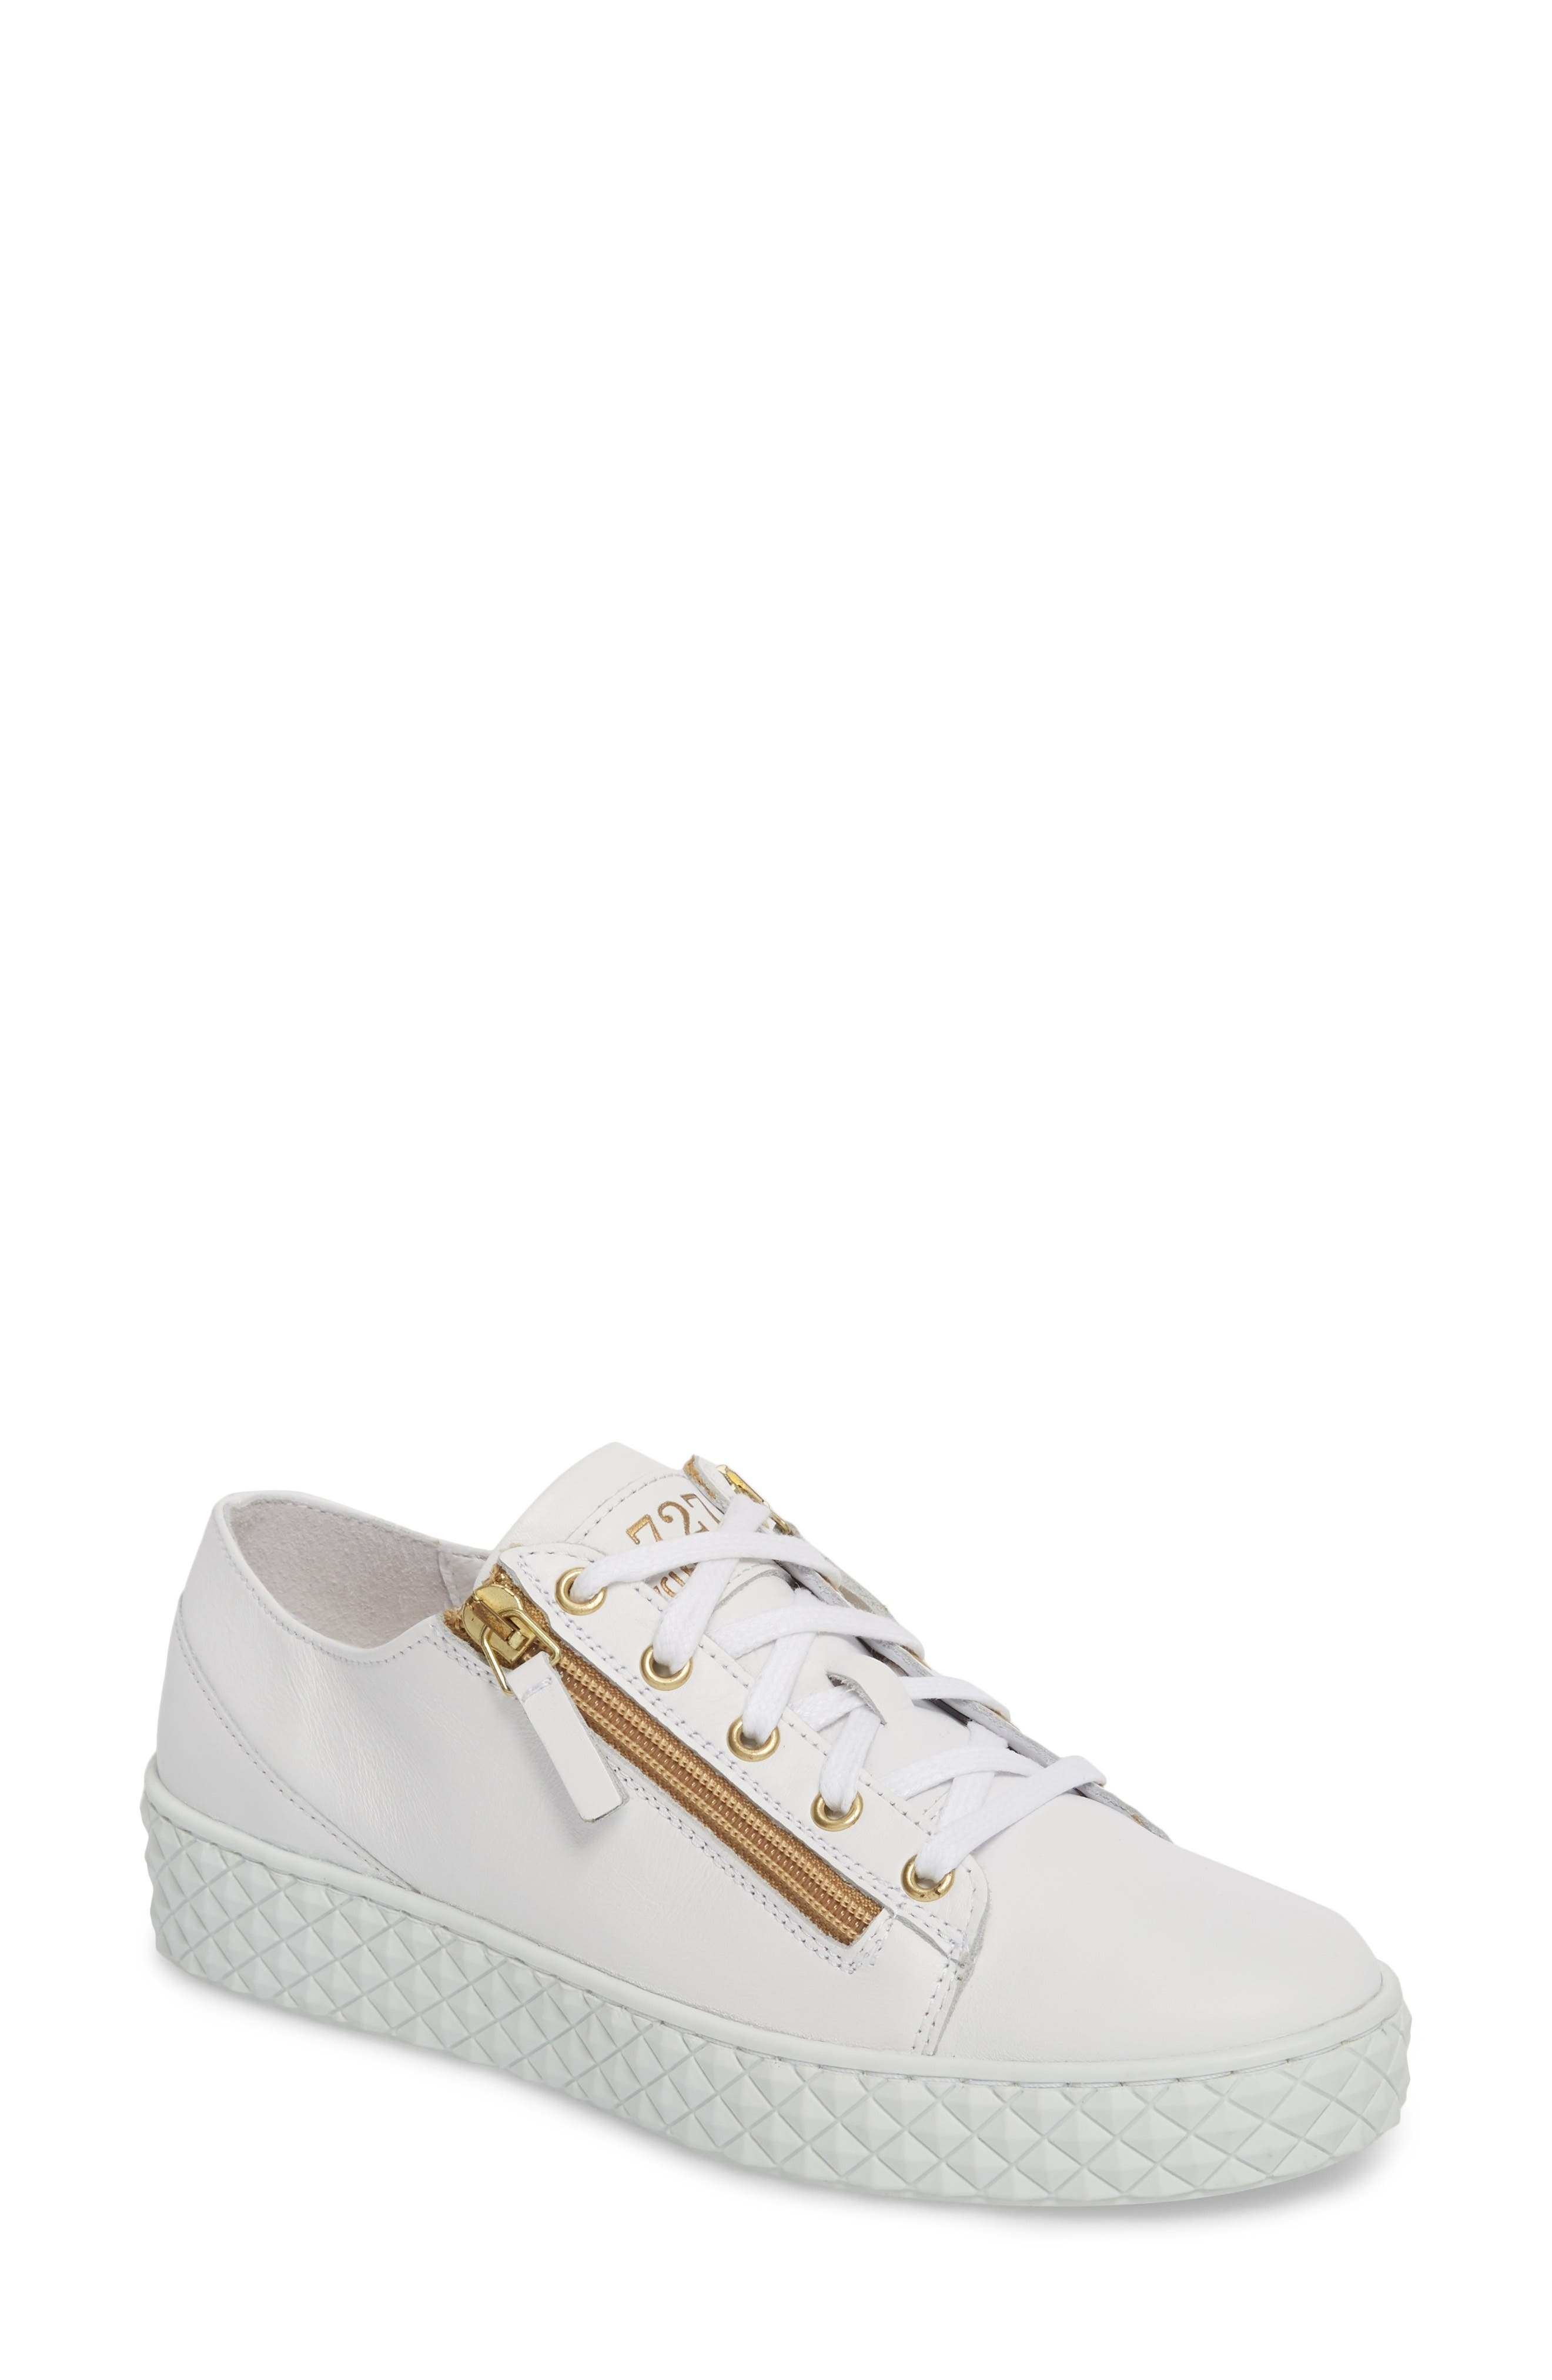 Mira Side Zip Low Top Sneaker,                             Main thumbnail 1, color,                             Optic White/ Gold Leather